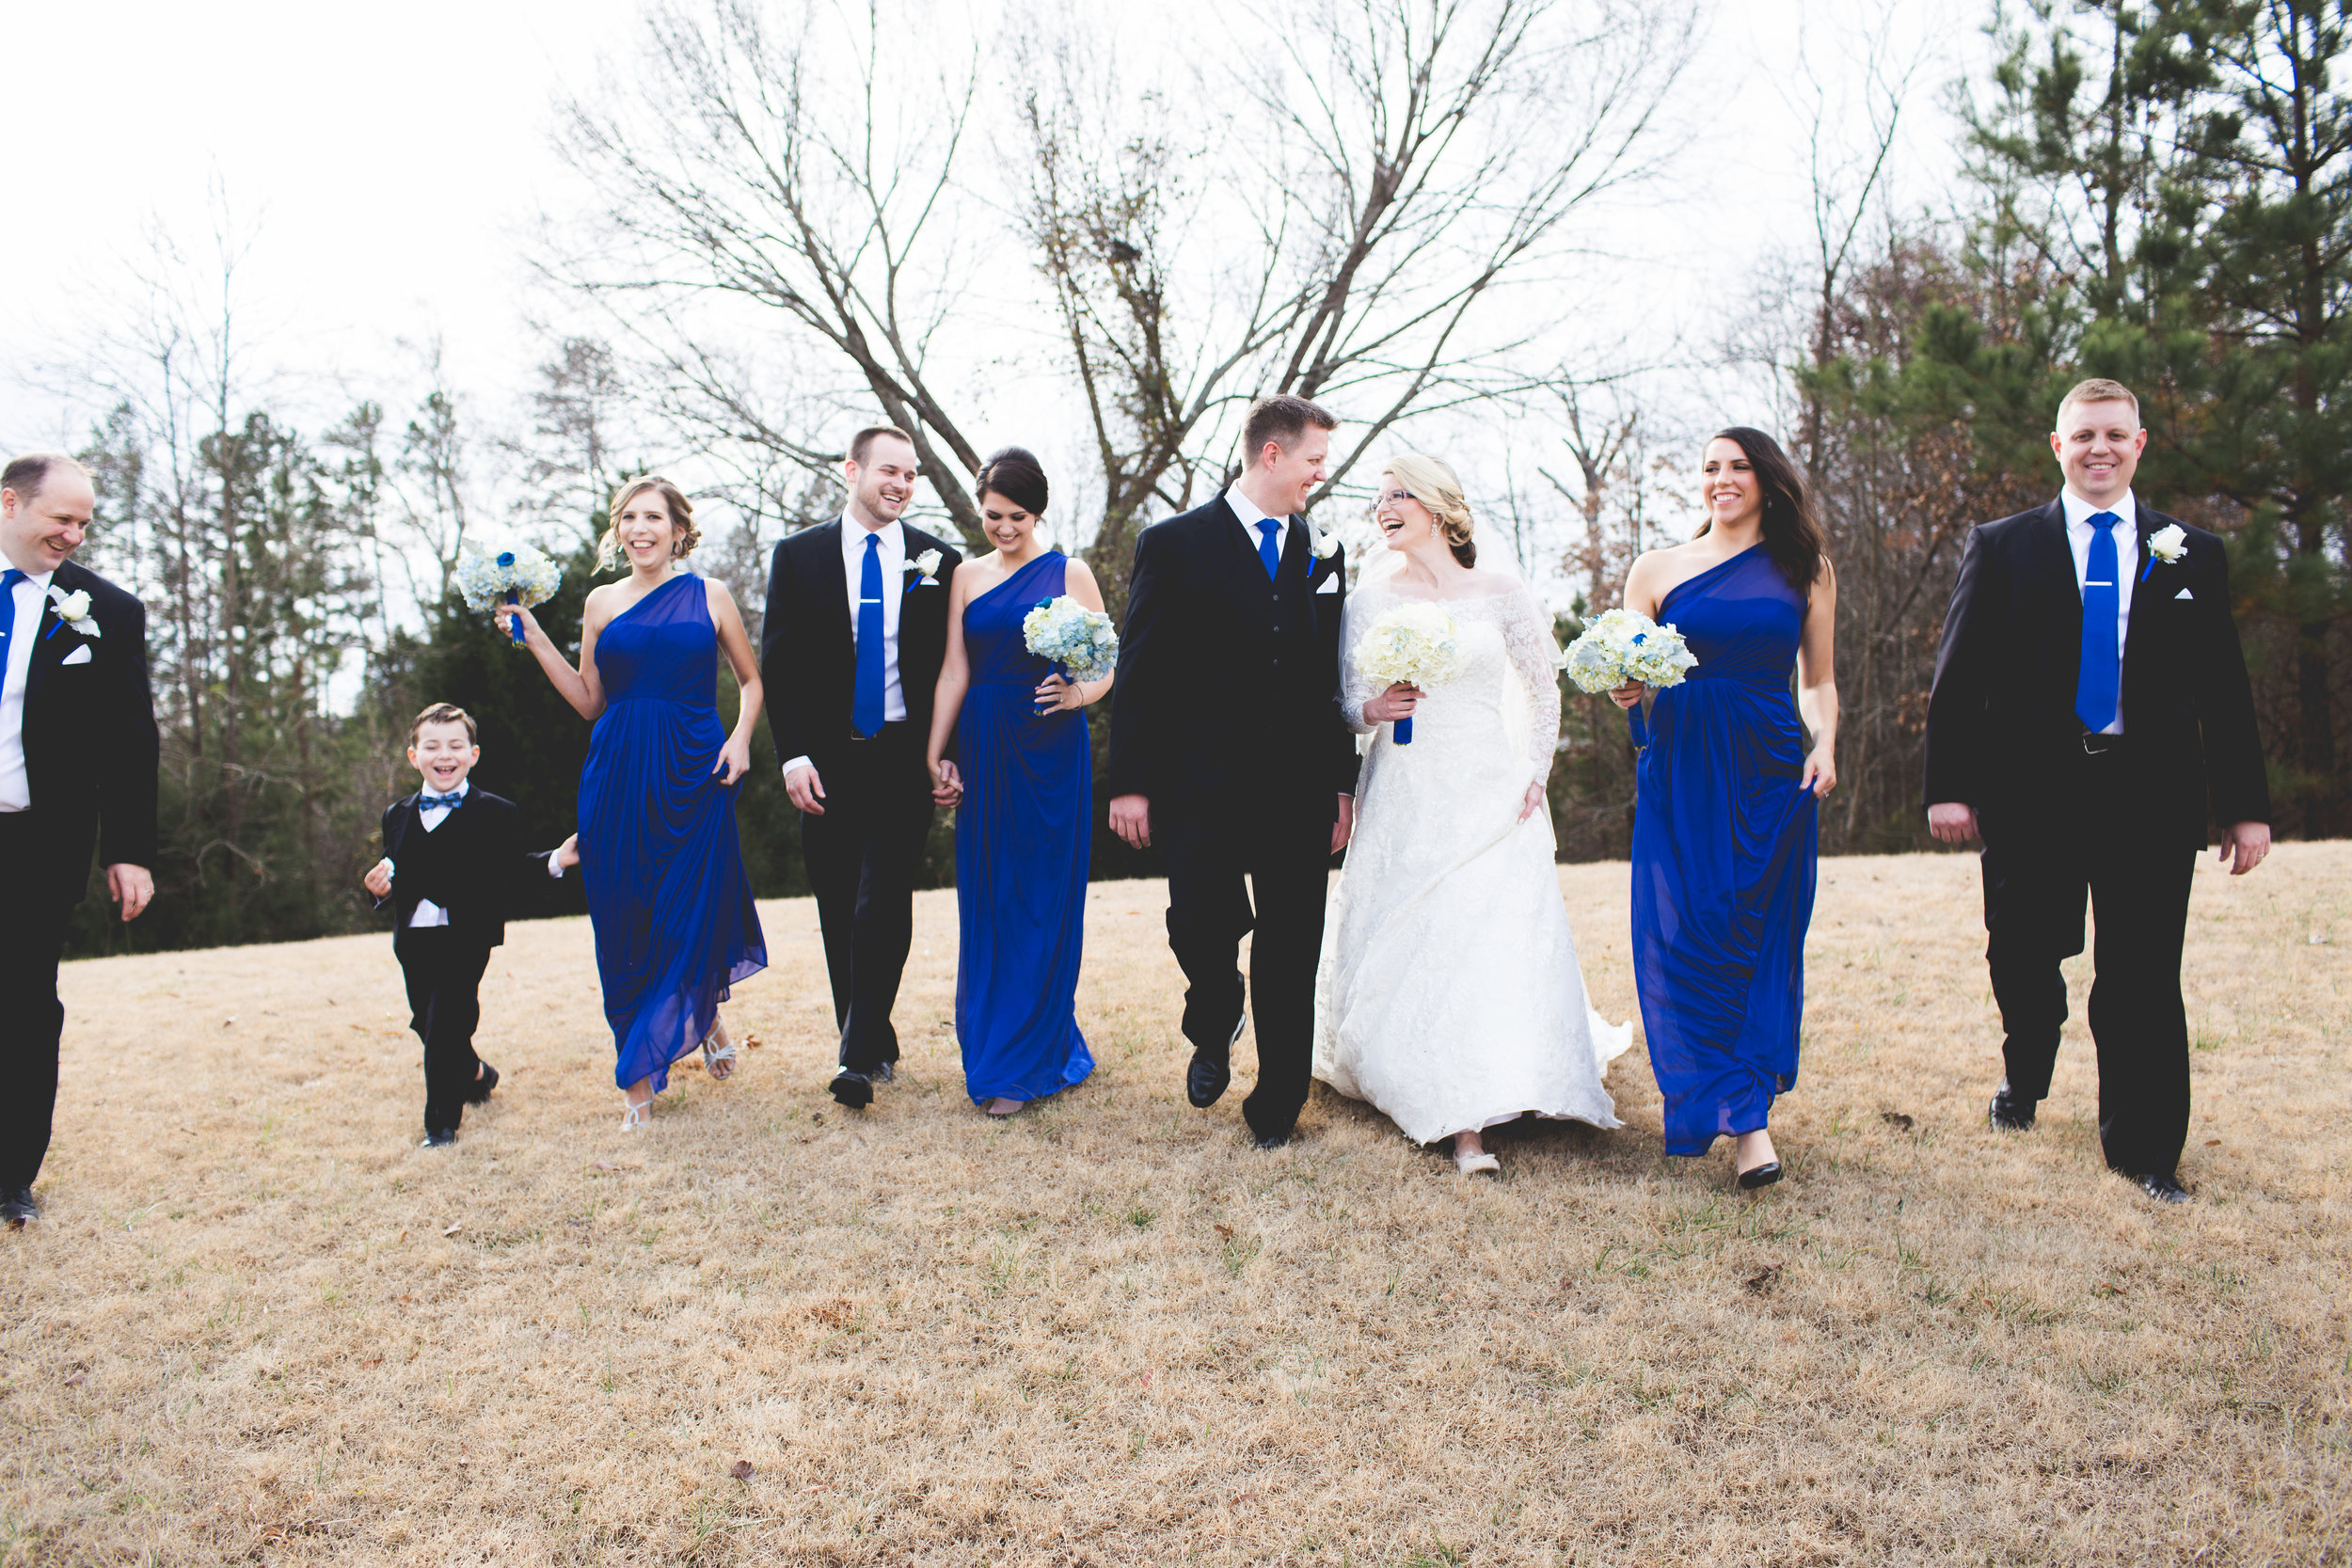 Winter Bridal Party Poses